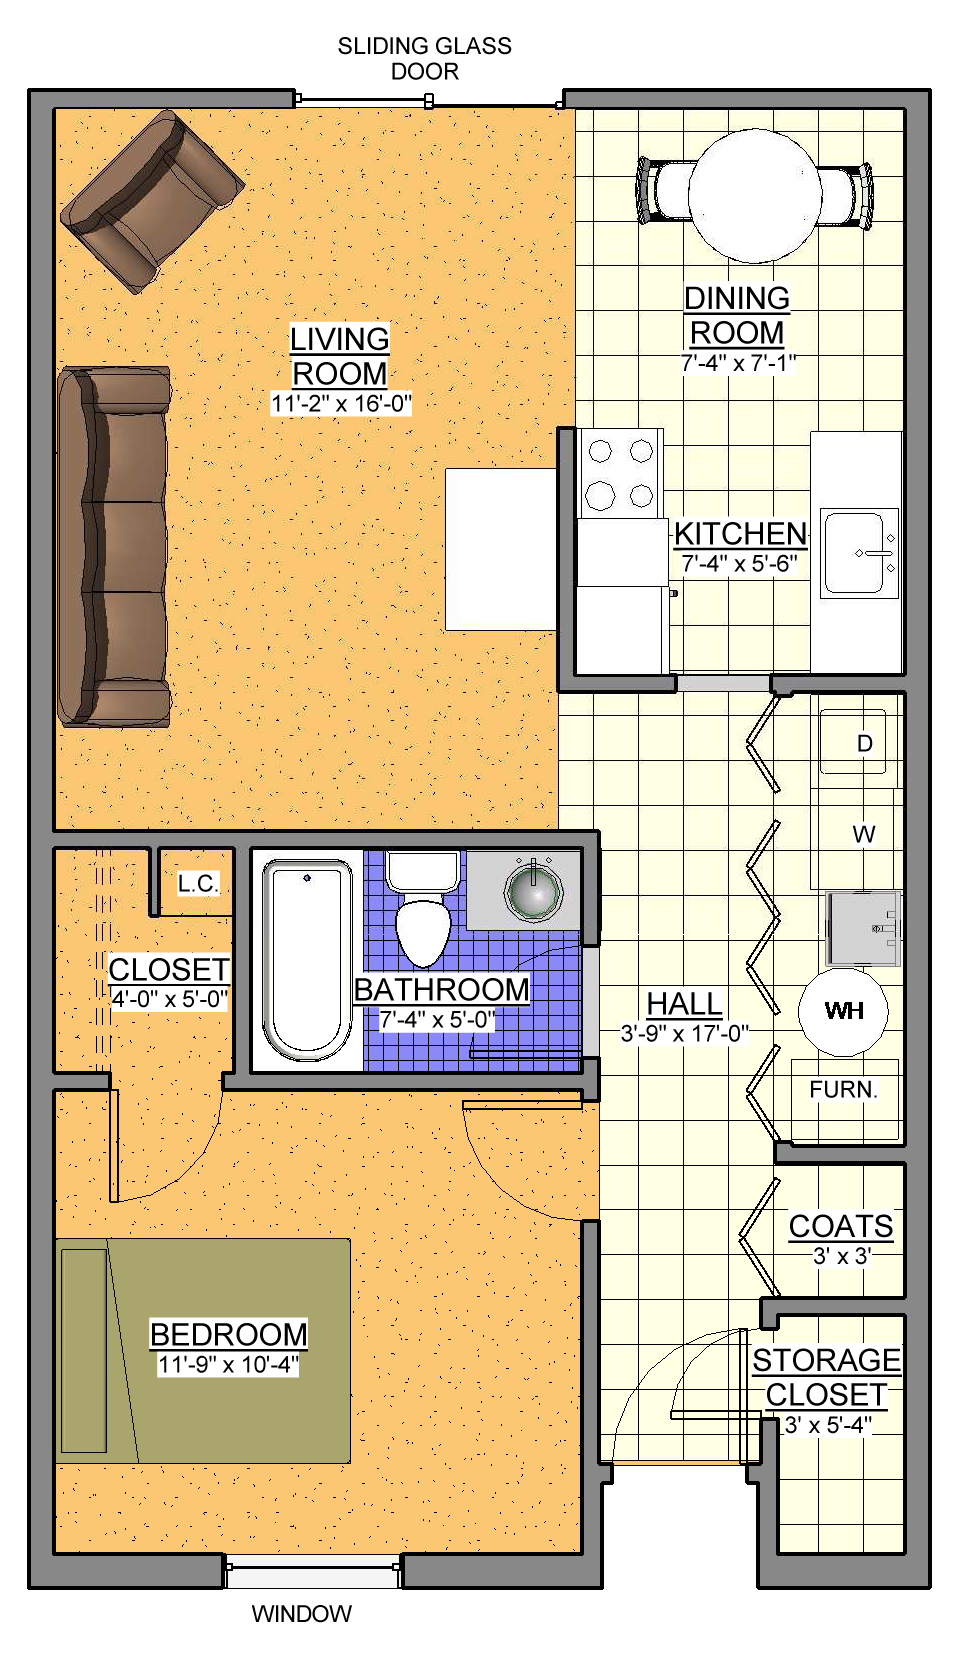 floorplan1bed